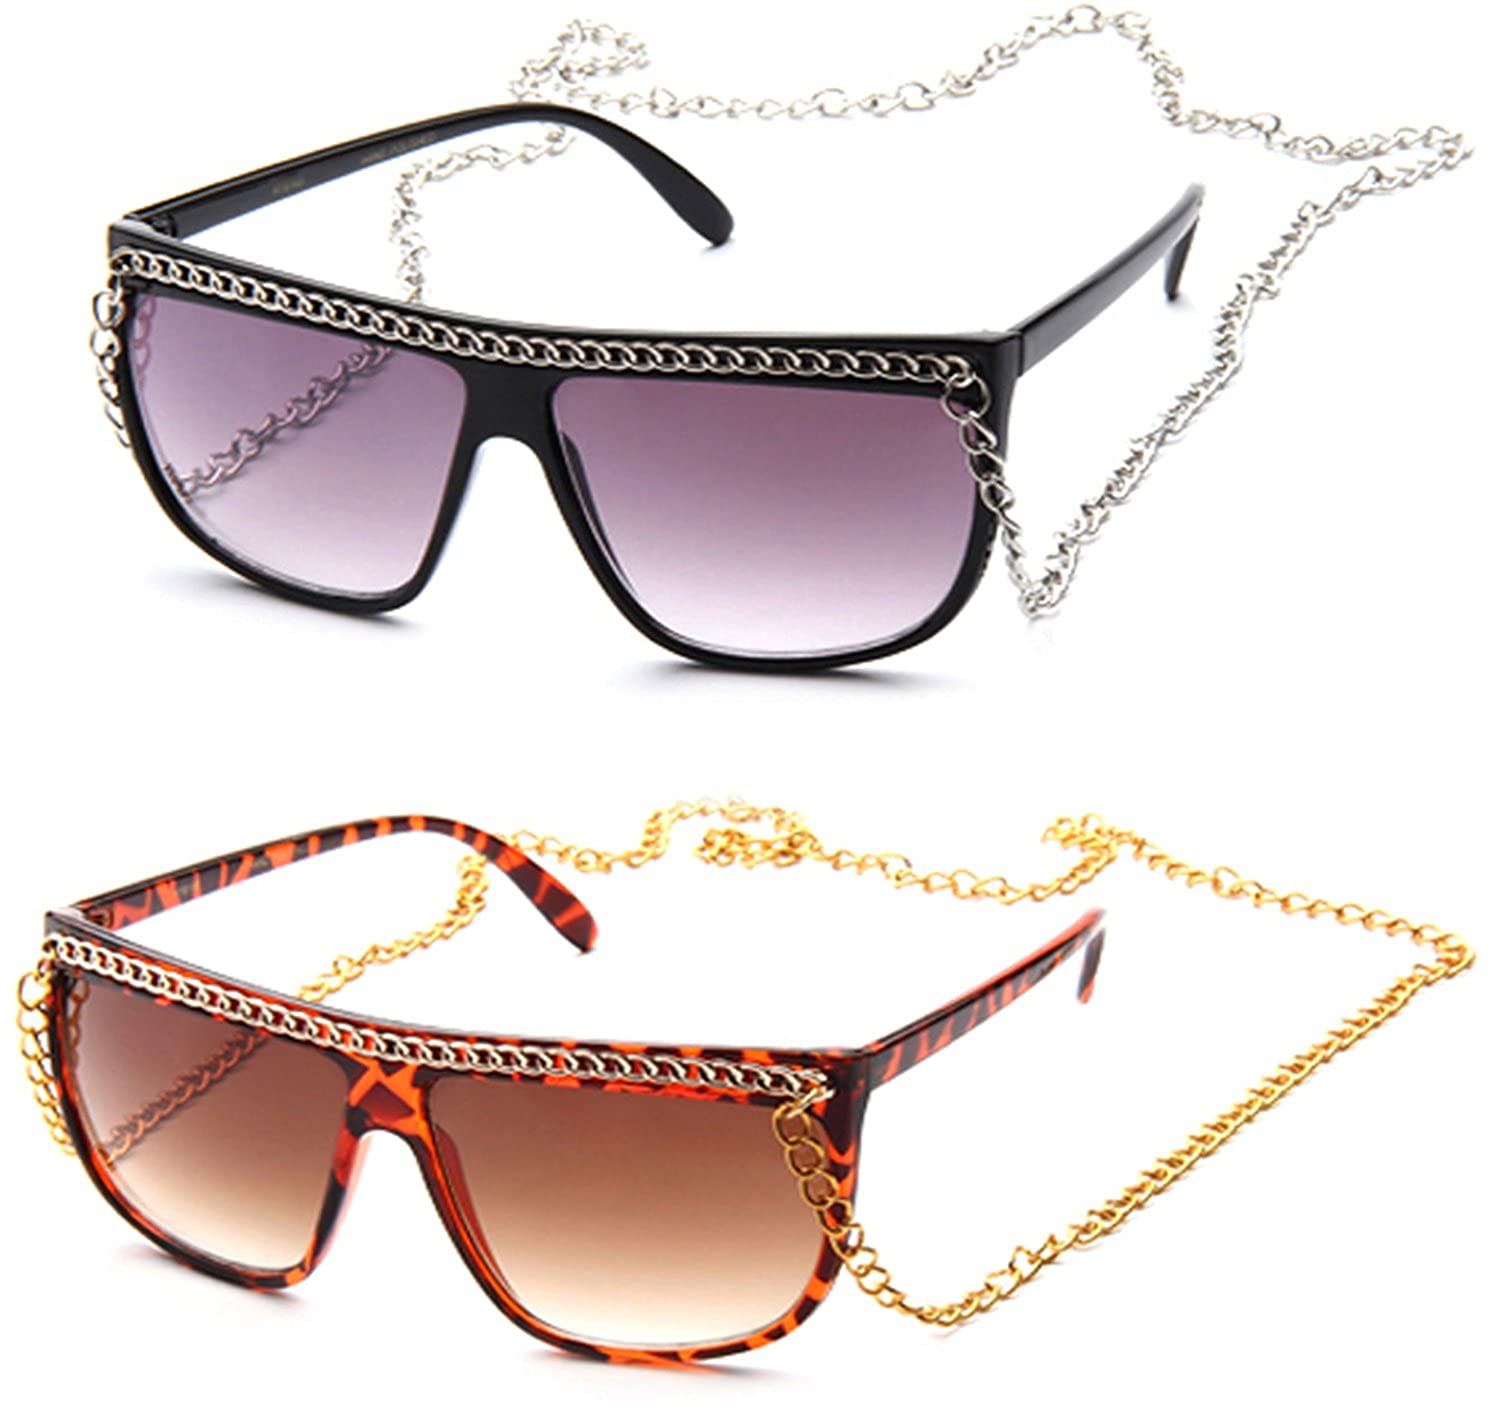 9019f666752cc Amazon.com  Flat Top Oversized Retro Chain Sunglasses with Metal Chain on  Top   Neck  Clothing